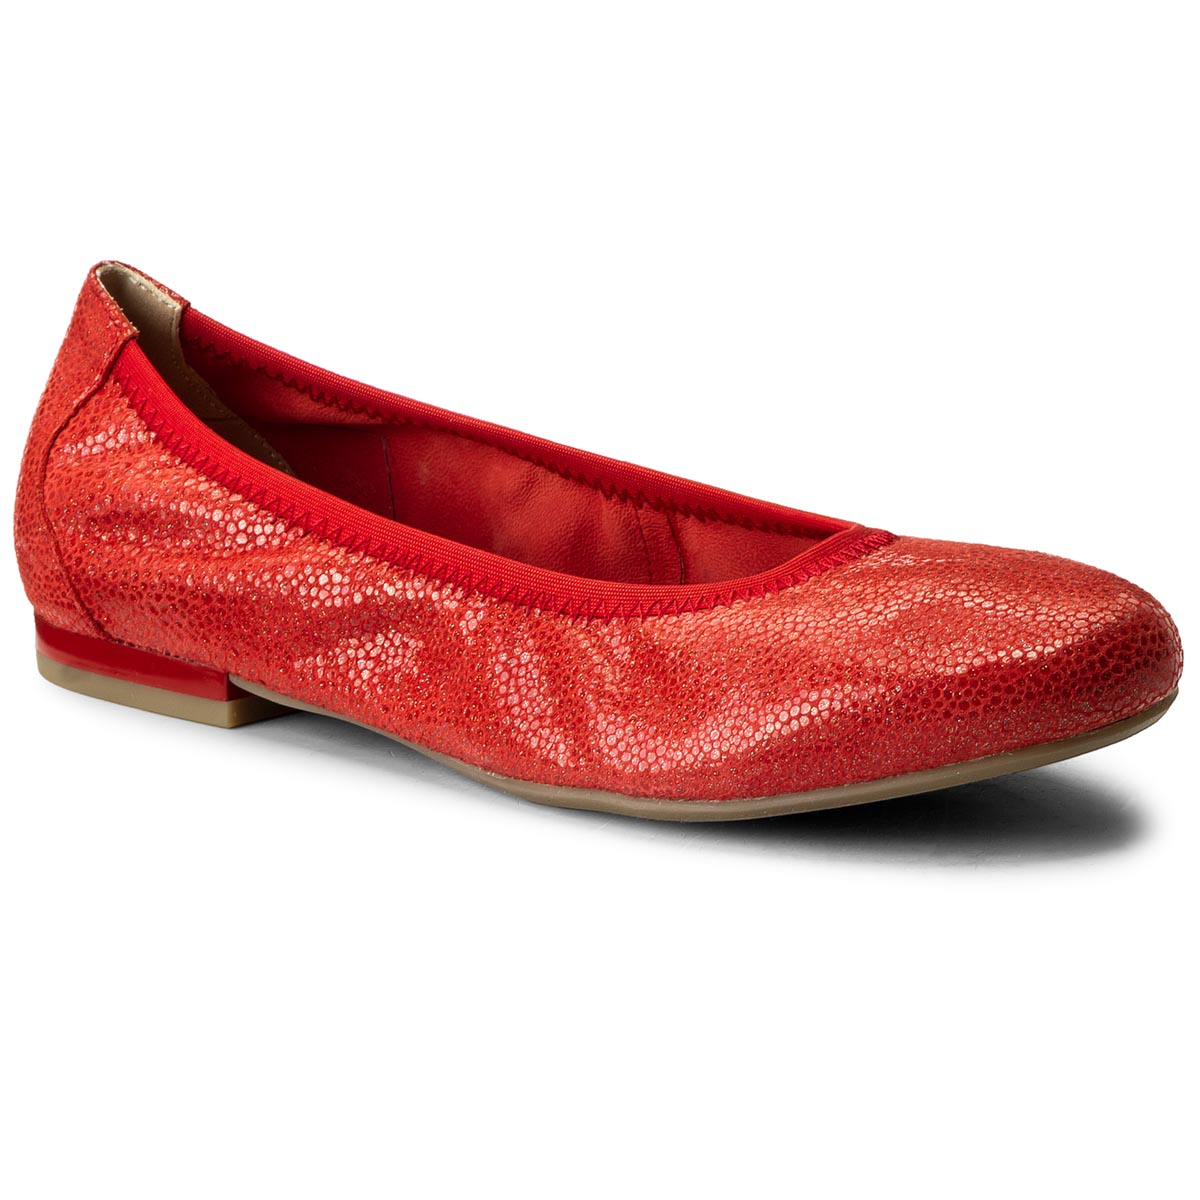 Baleriny CAPRICE - 9-22100-20 Red Multi 538